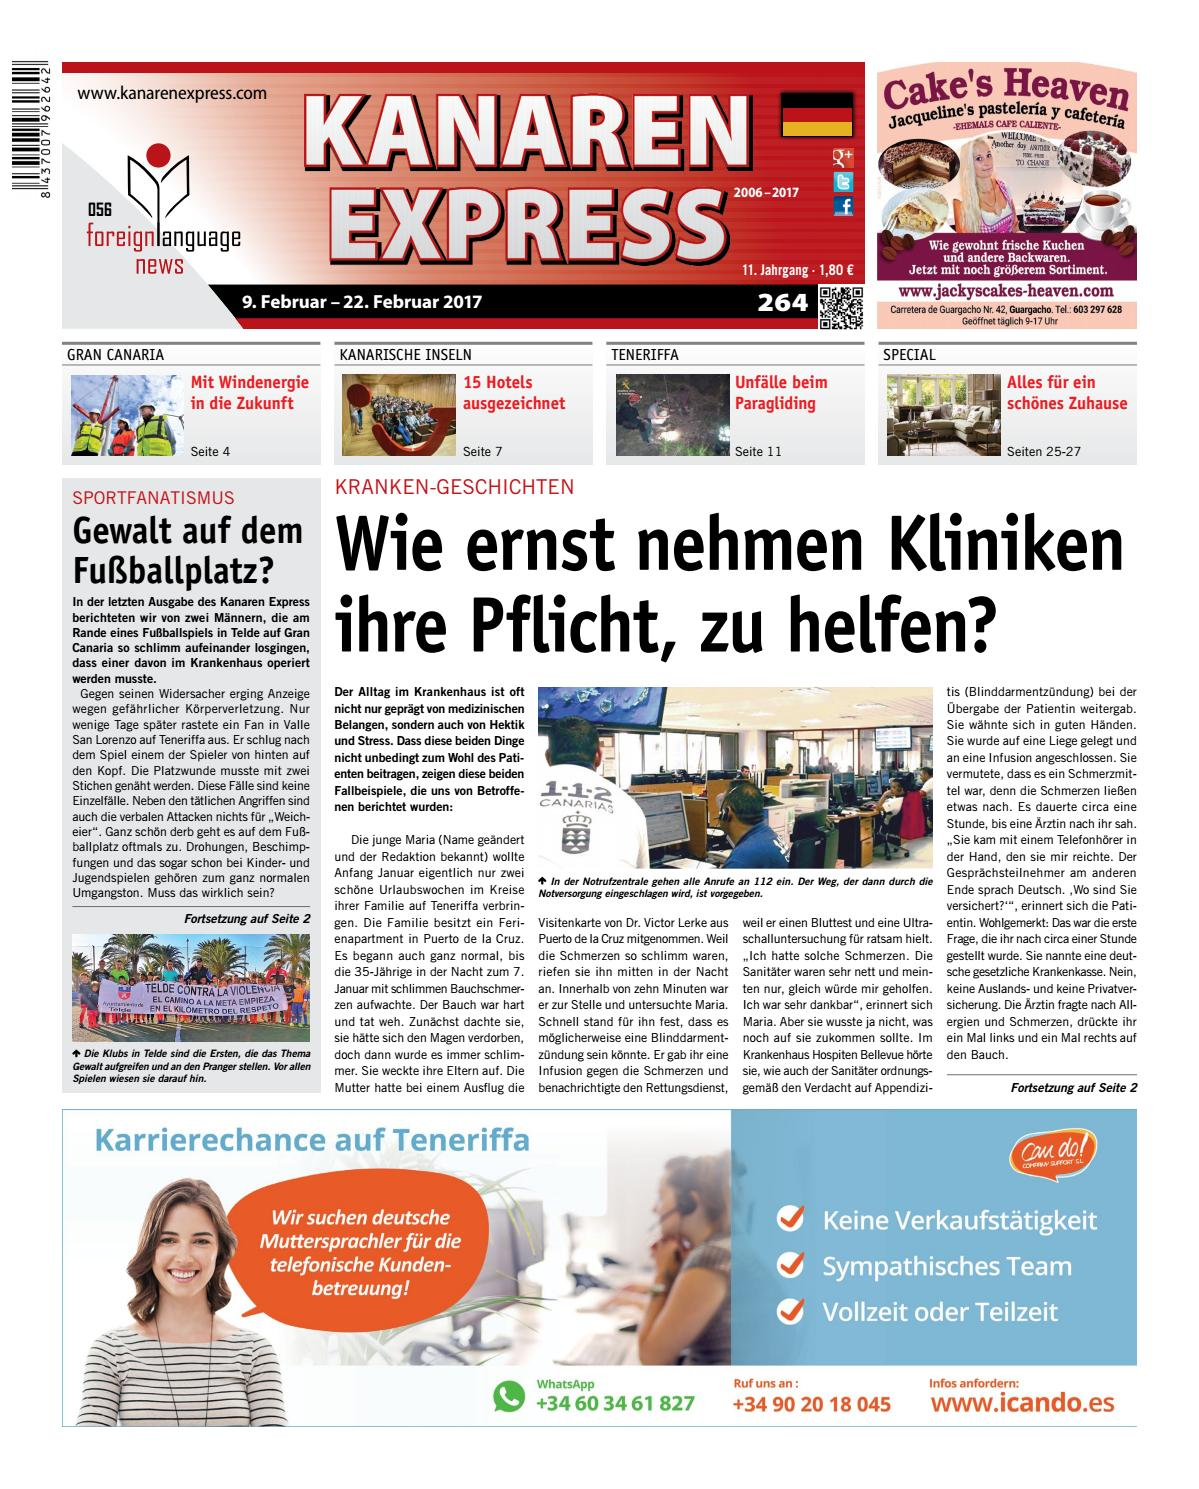 Damit Wird Das Bad Todschick Sweet Home Kanaren Express 264 Fln 56 By Island Connections Media Group Issuu